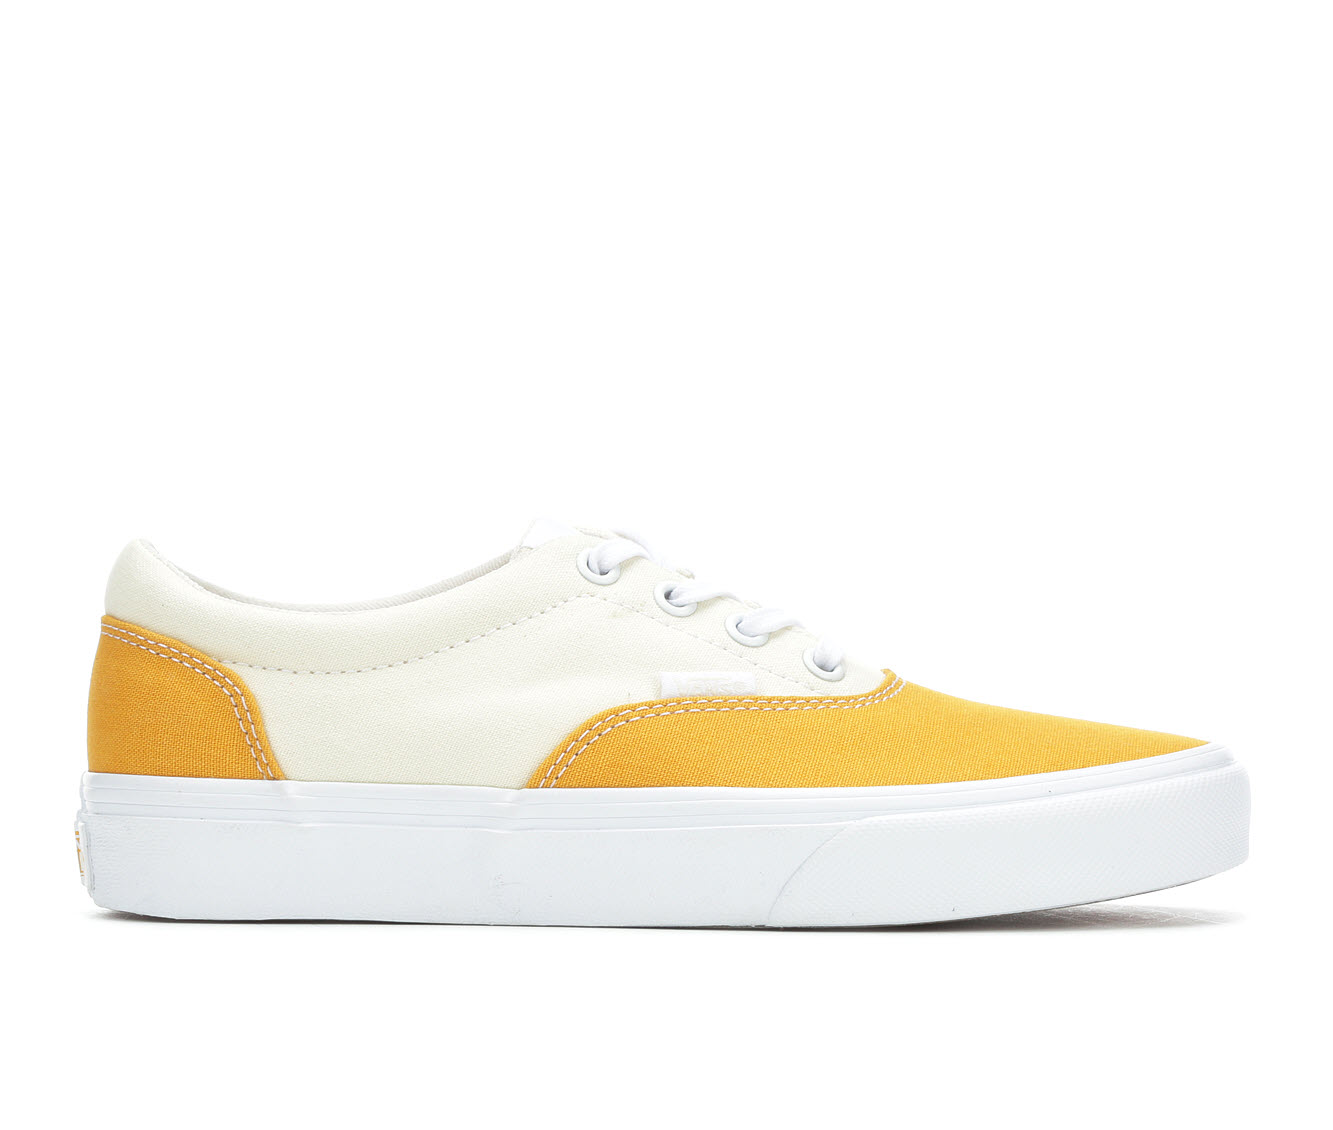 Vans Doheny Two Tone Women's Athletic Shoe (Yellow)